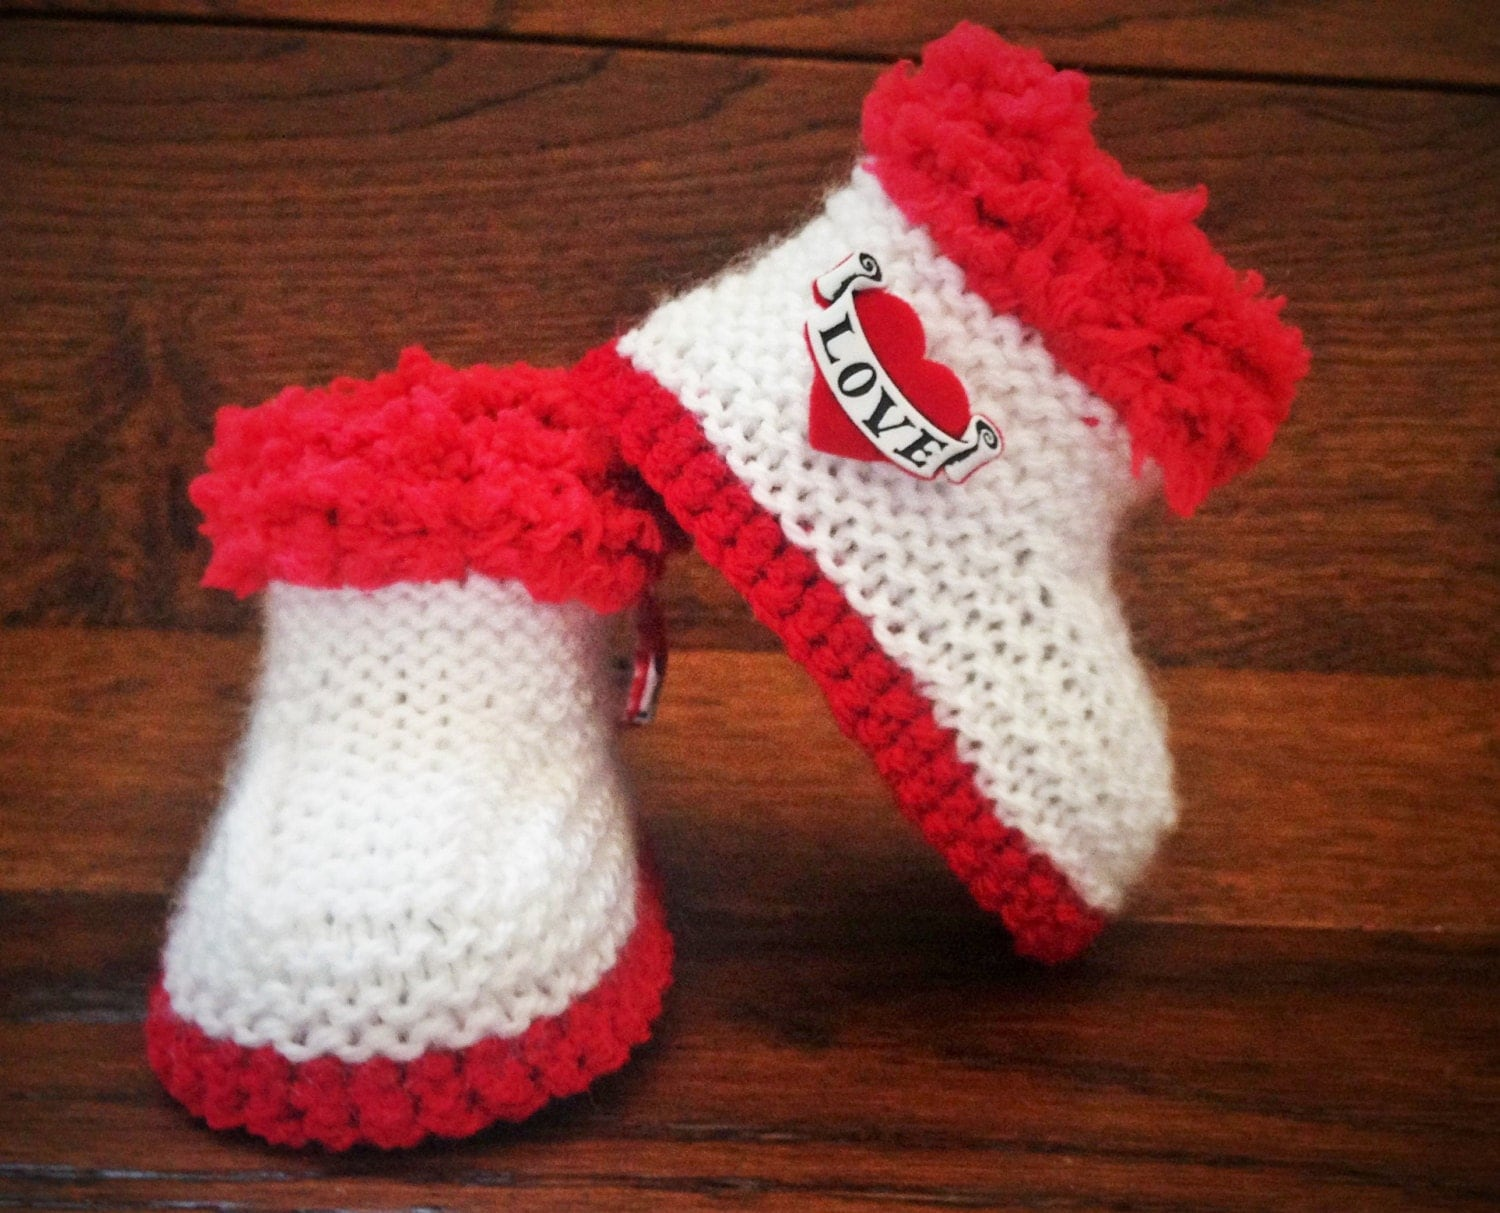 Hand Knitted Goth Baby Booties / Boots/ Shoes Love by FunkyKnitsUK